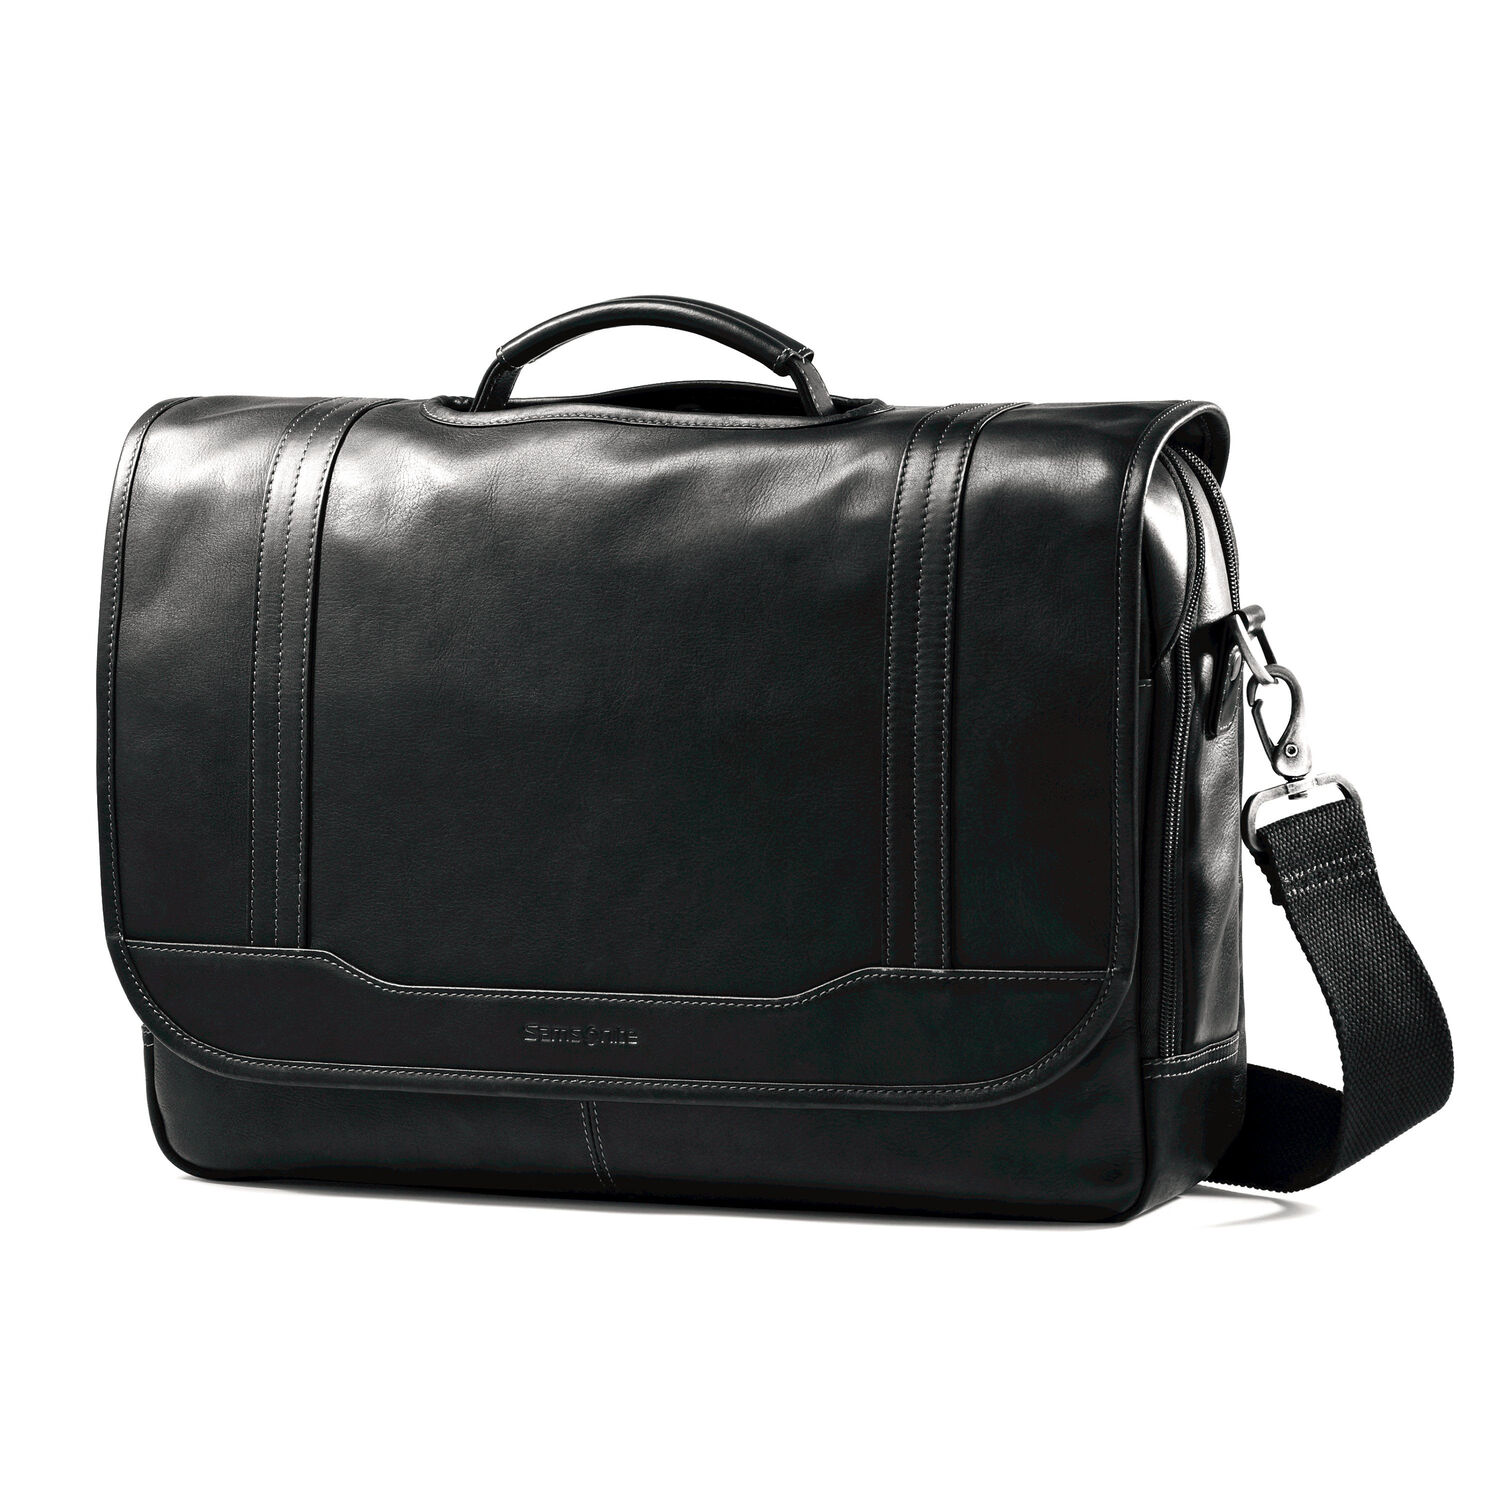 Samsonite Colombian Leather Flapover Briefcase. Take 20% Off!   230.00 169.99. Samsonite Classic Business Laptop Bag ... b78cb4df0249d